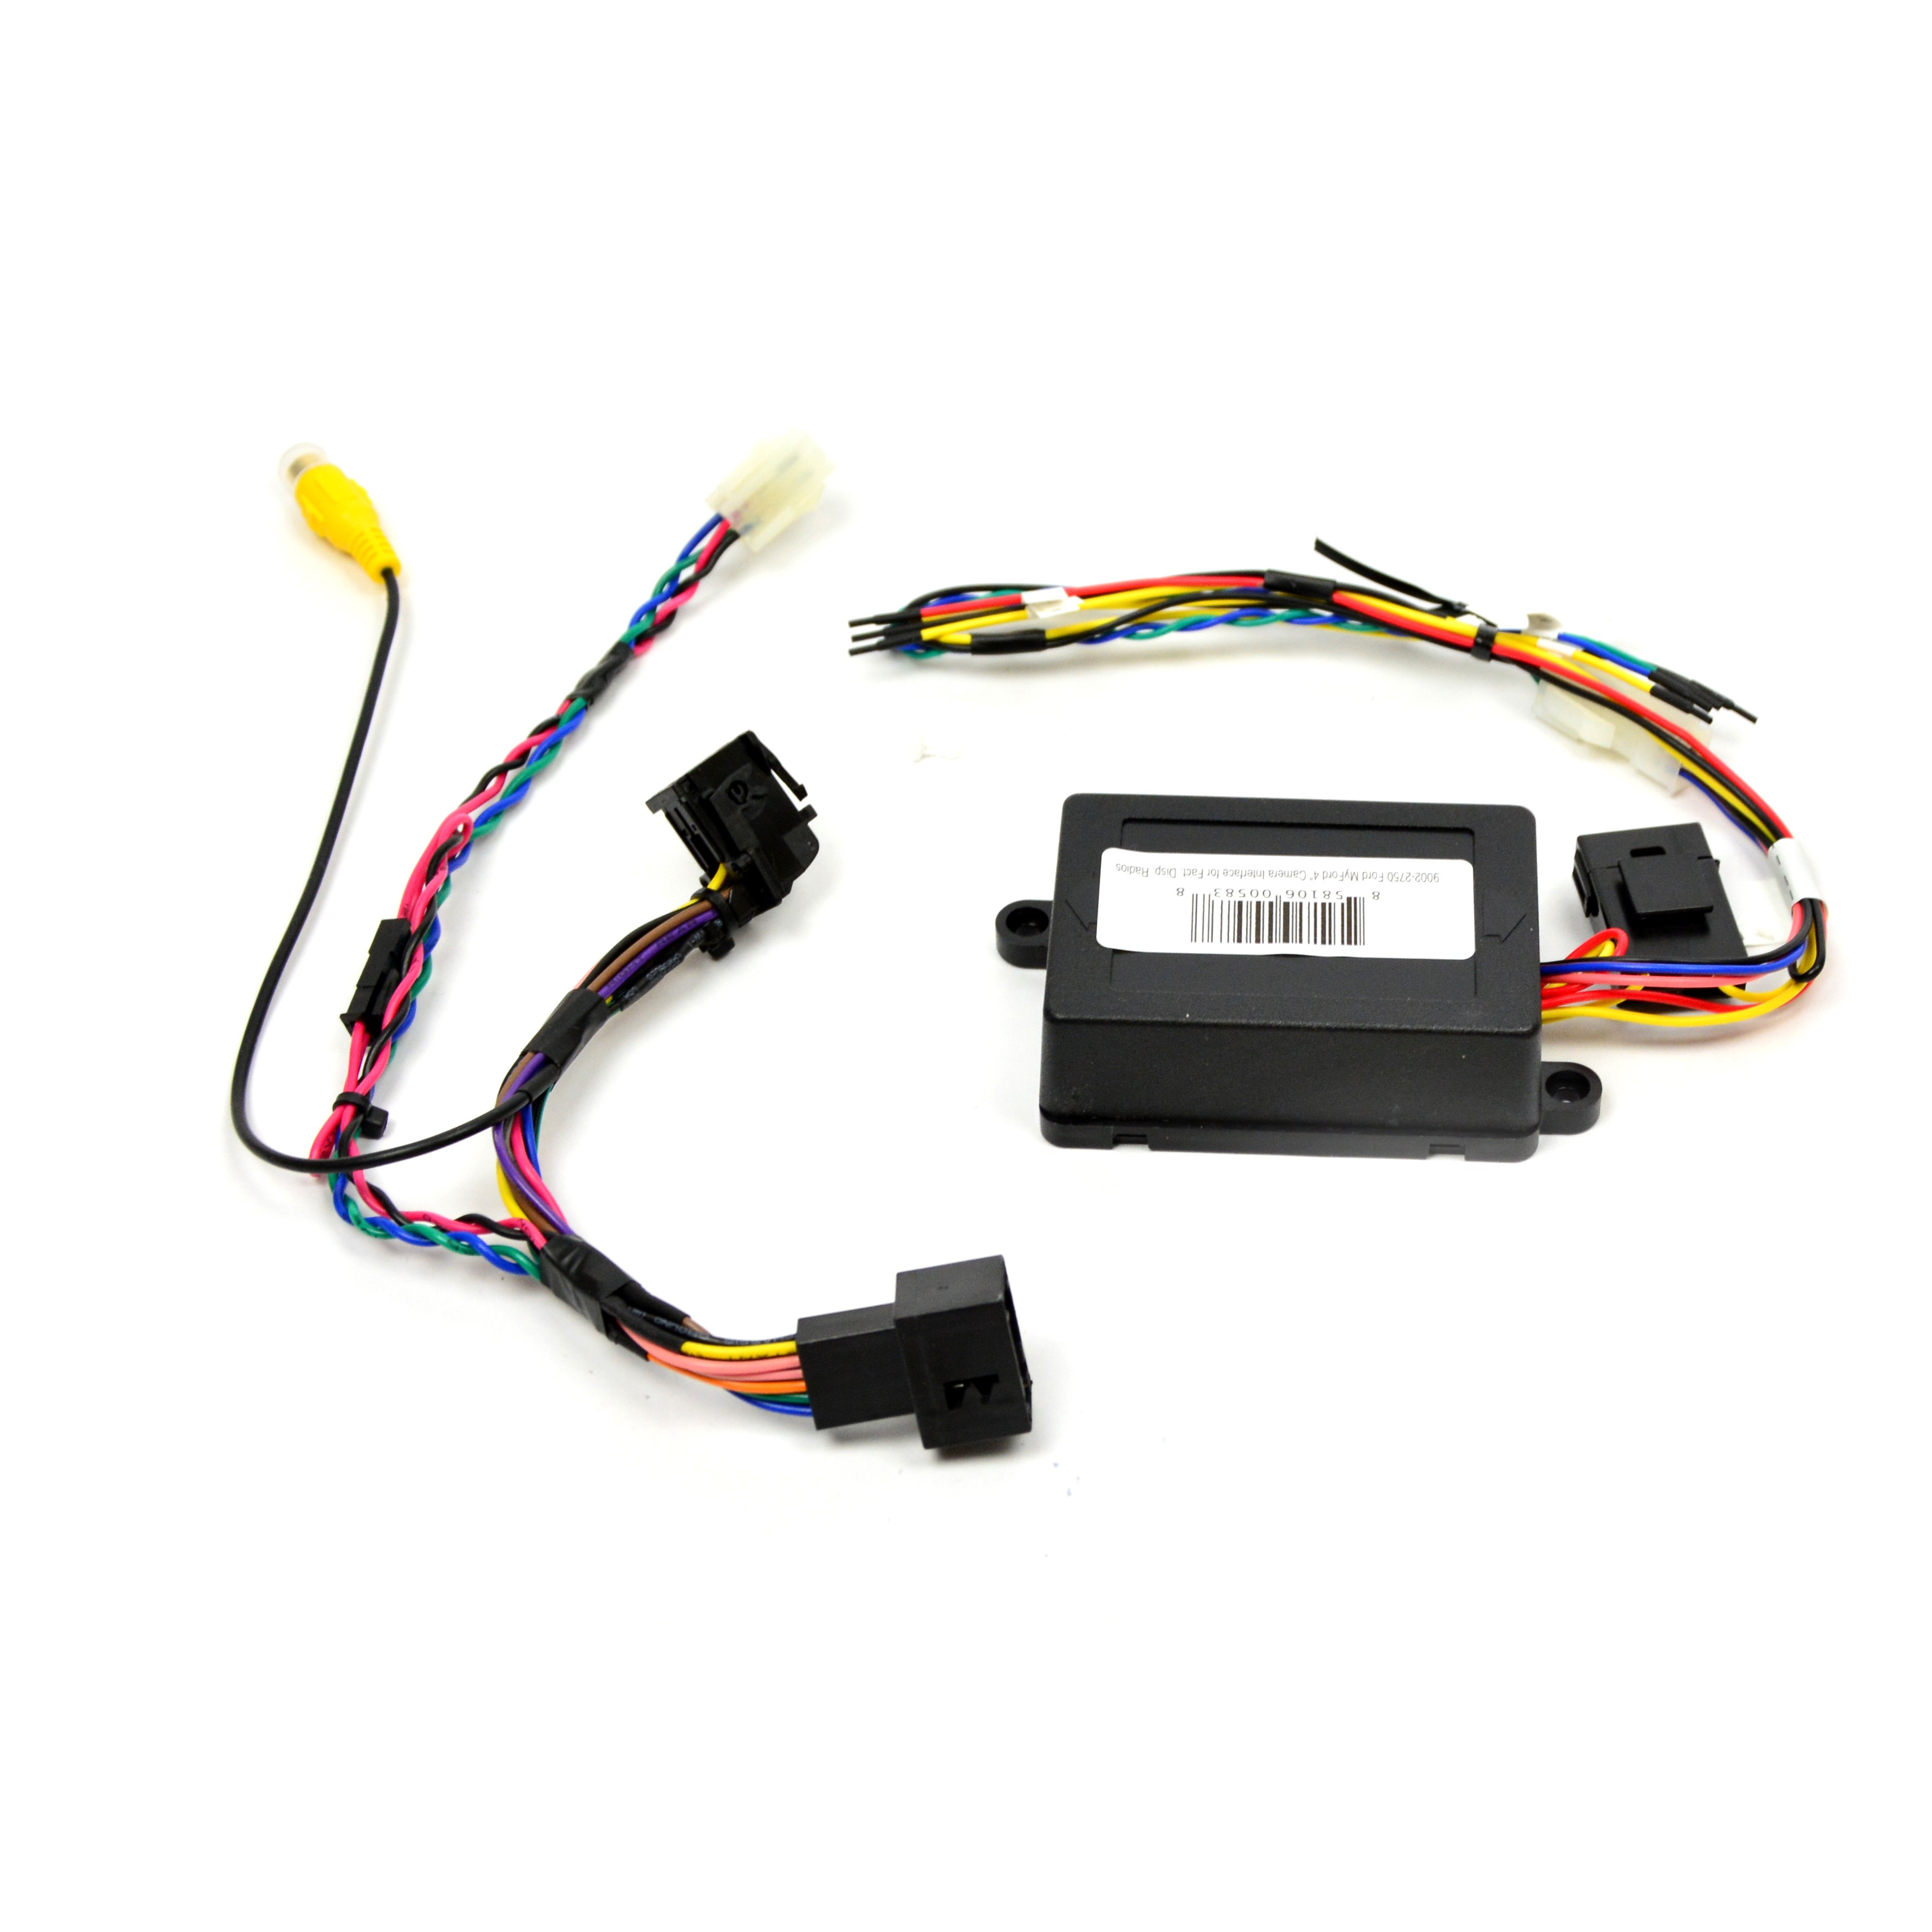 brandmotion 9002 2750 backup camera interface for integrate rear view camera to ford 4 inch factory display with 4 pin connector harness to module harness  [ 3568 x 3568 Pixel ]